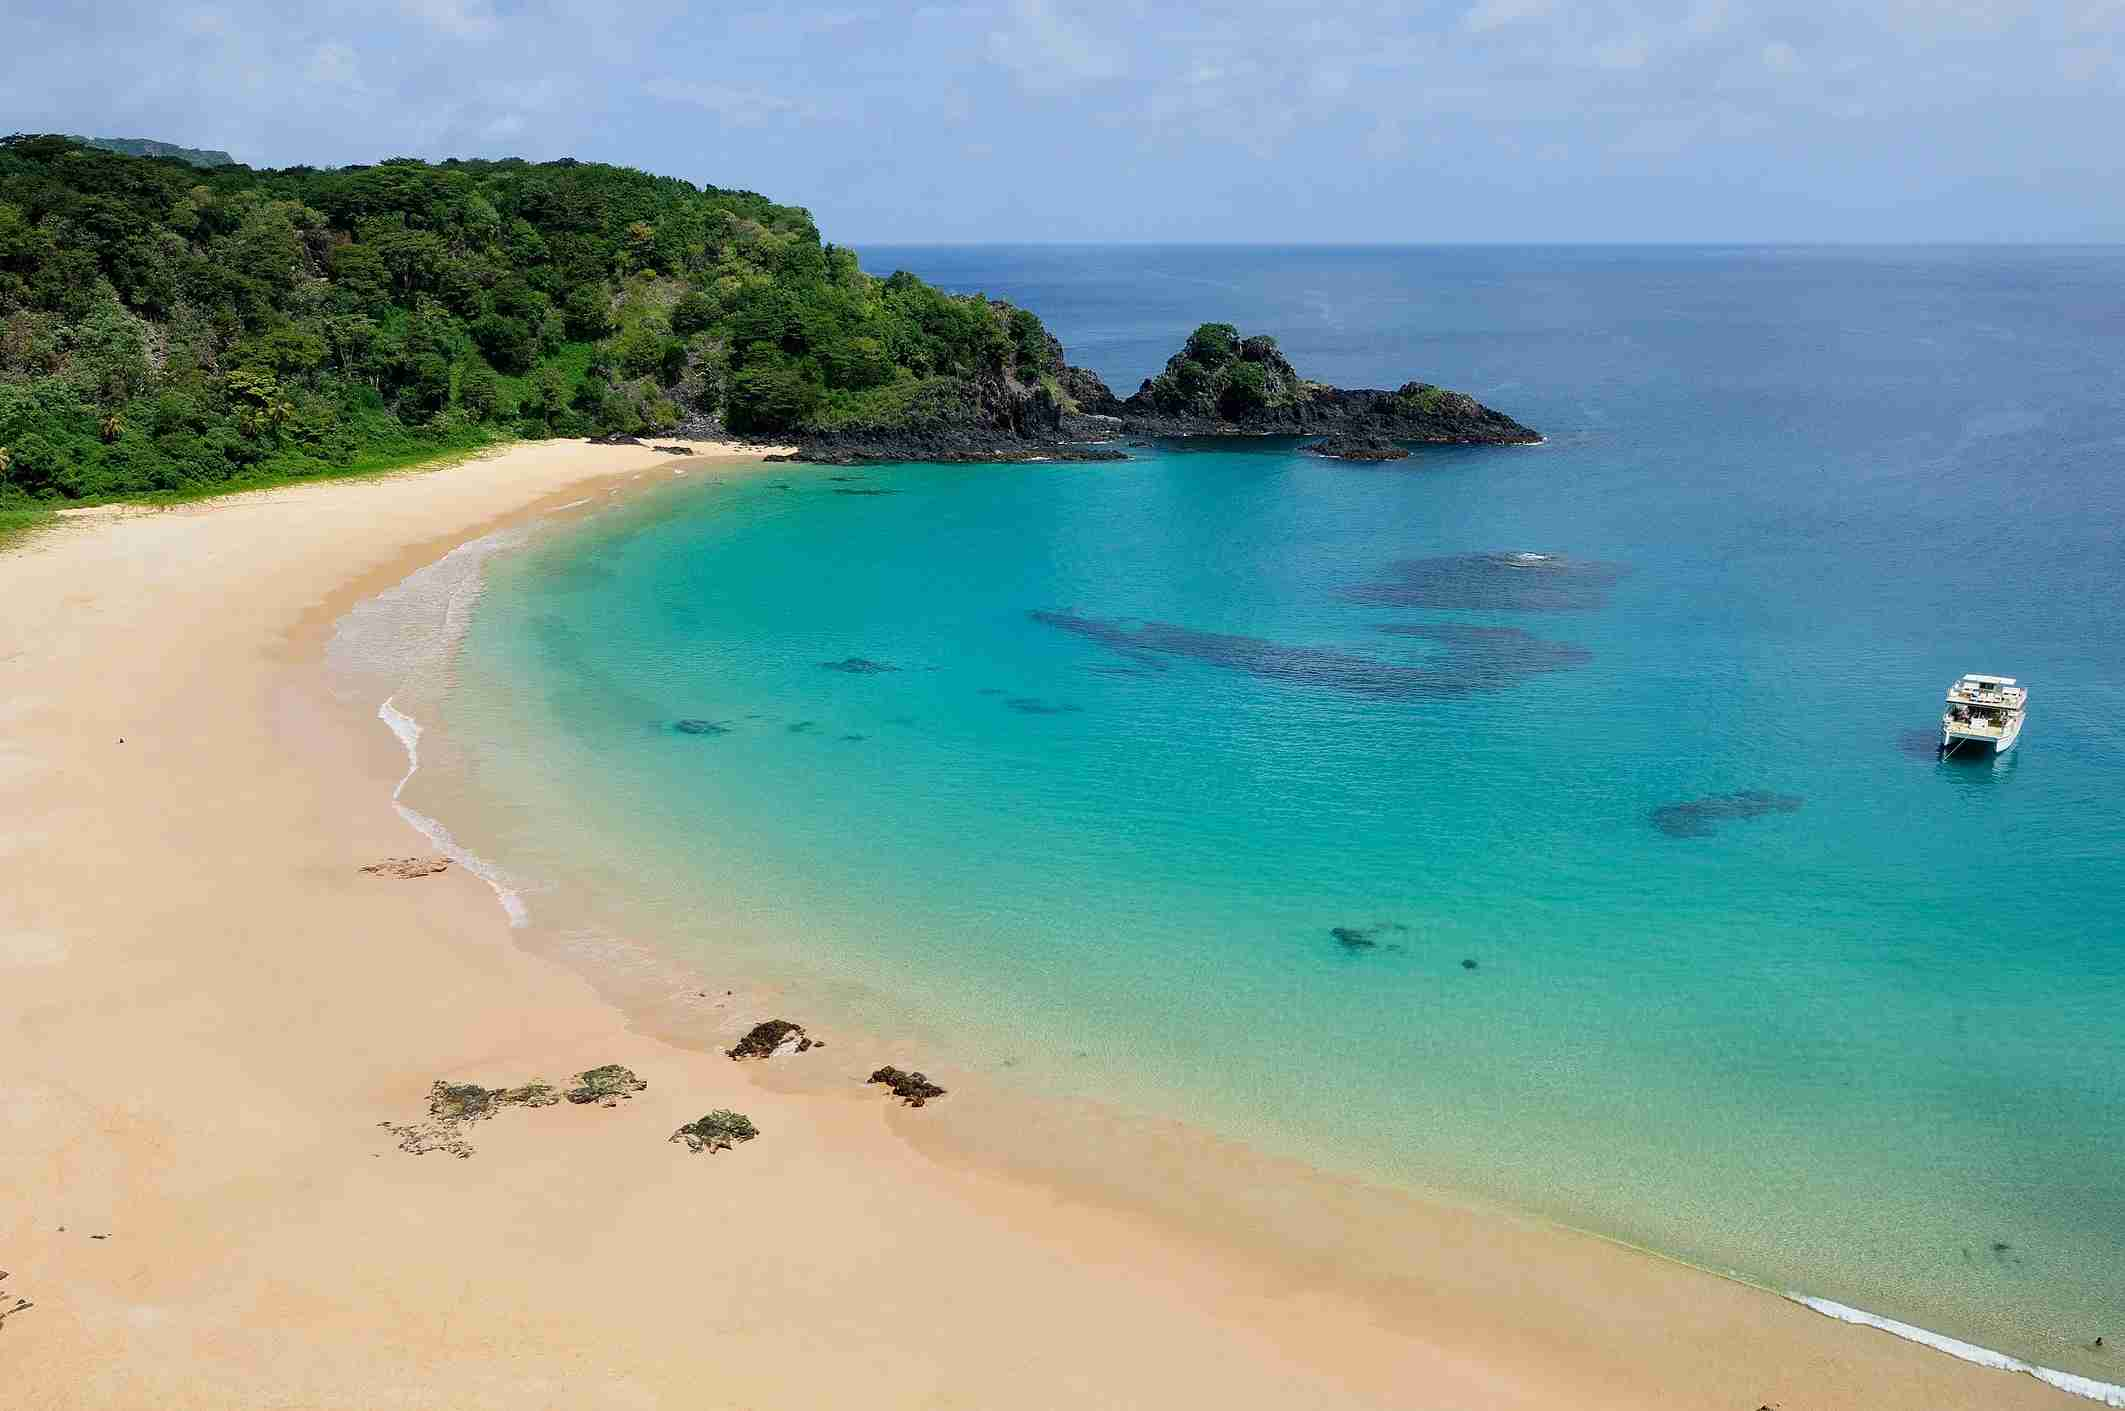 Baía do Sancho was ranked by Tripadvisor as the best beach in the world.